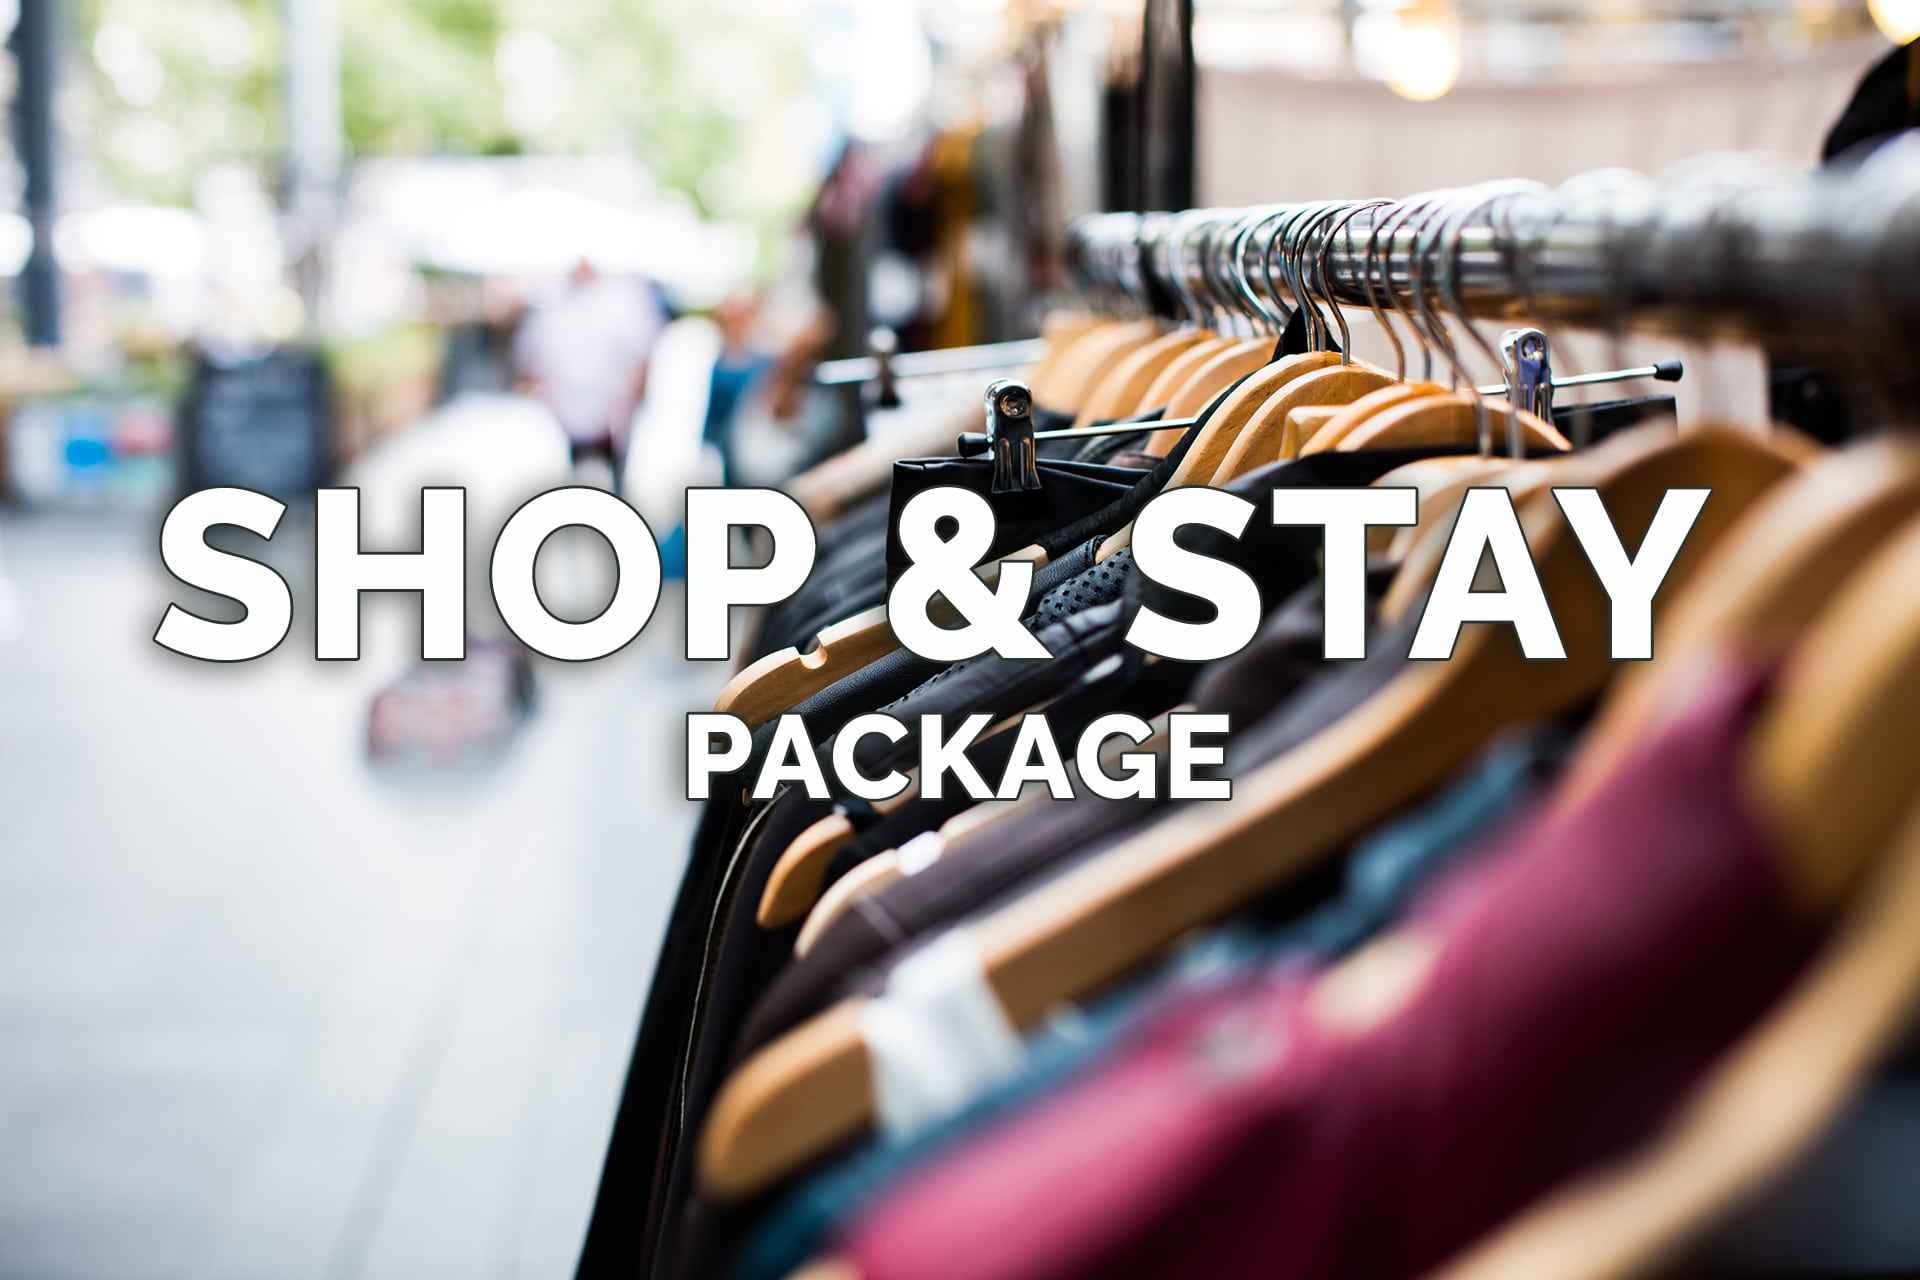 Shop and Stay Package - Get a $25 Gift Card